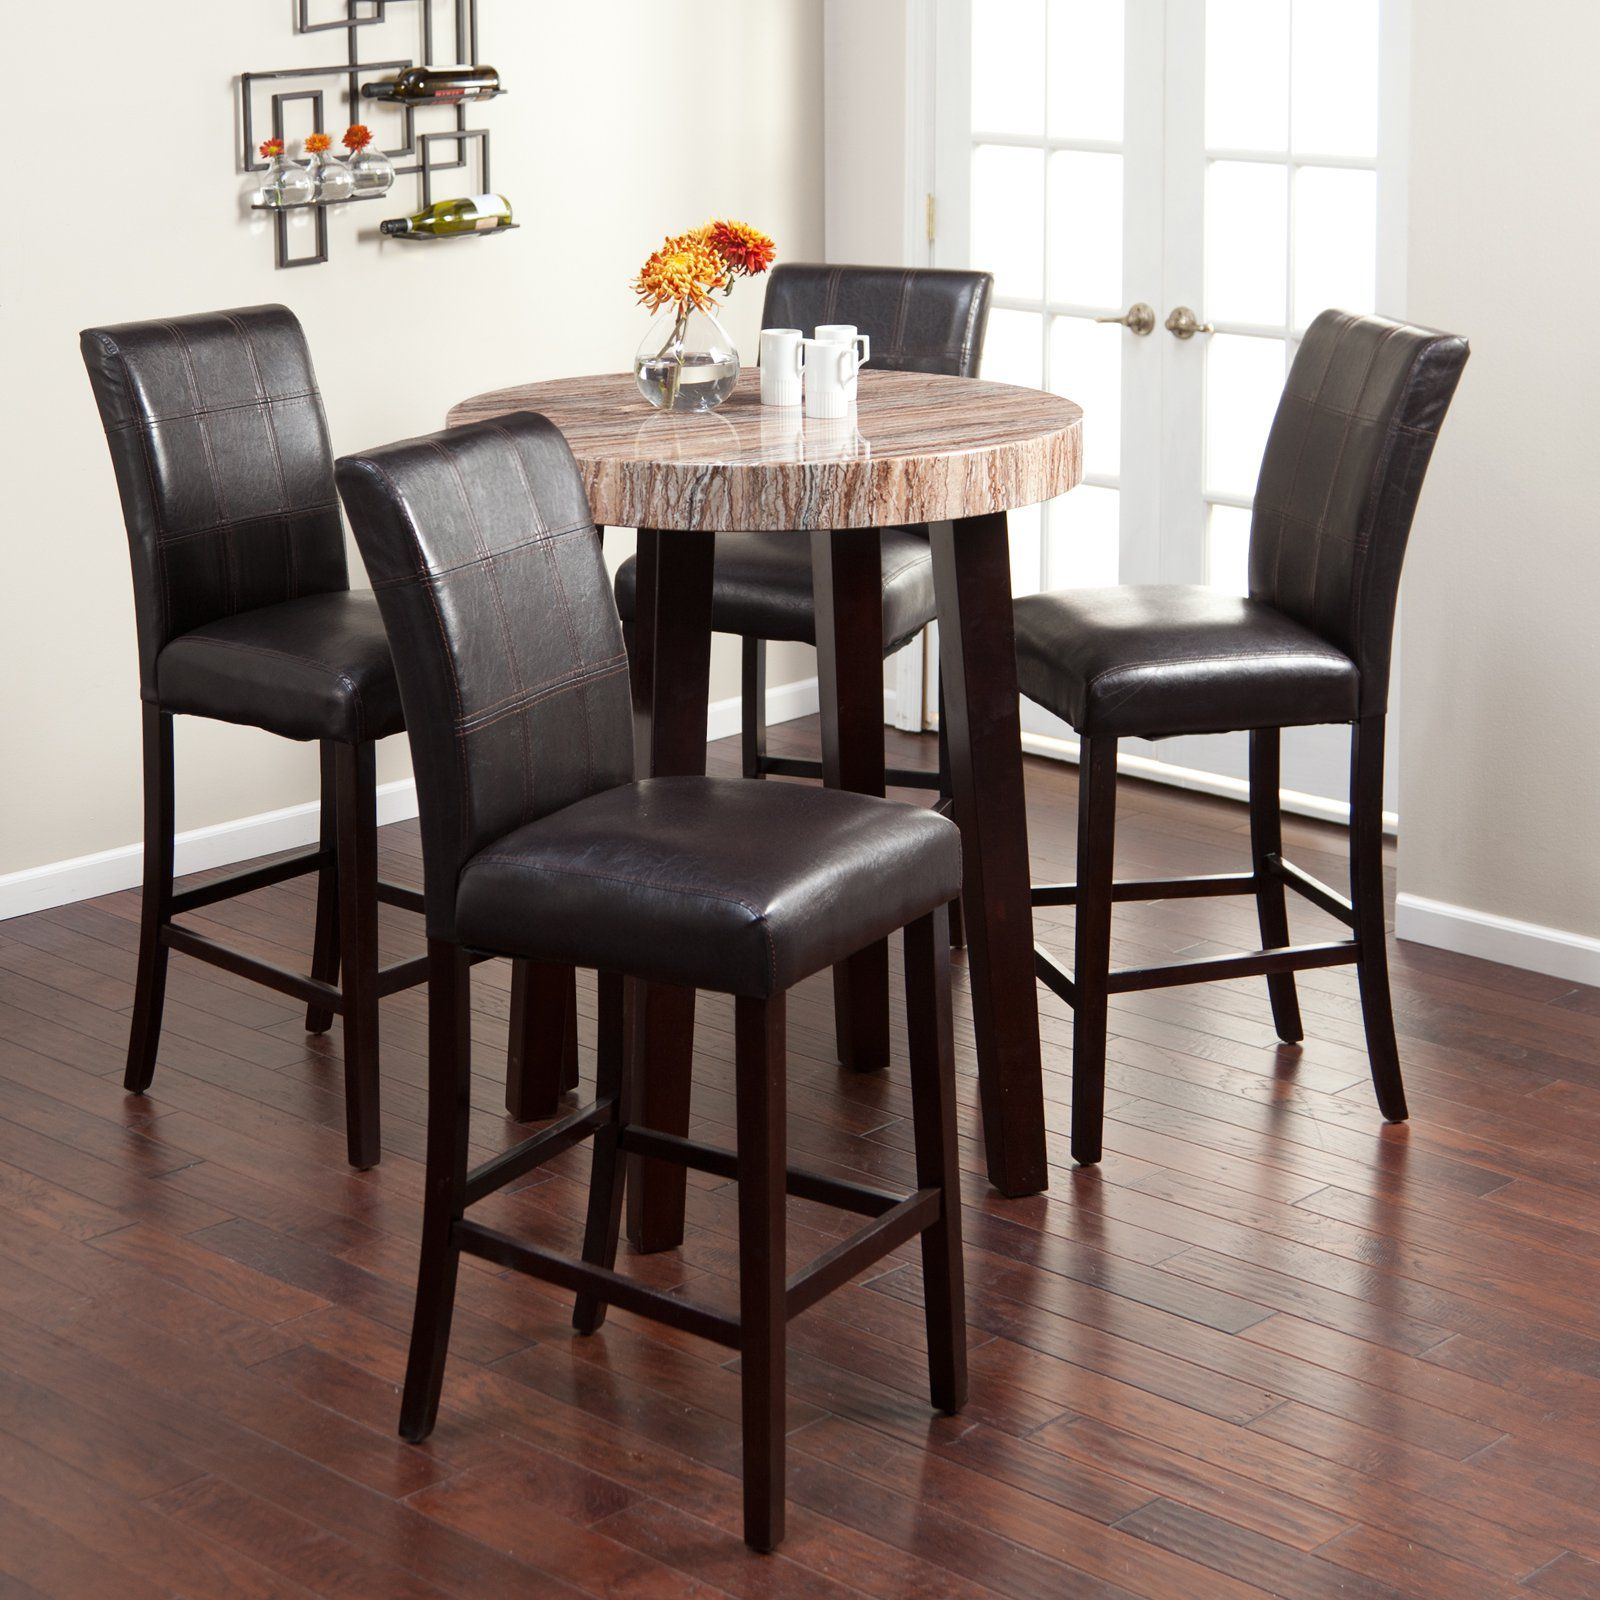 Carmine 5 Piece Pub Table Set - $499.98 @hayneedle & Have to have it. Carmine 5 Piece Pub Table Set - $499.98 @hayneedle ...